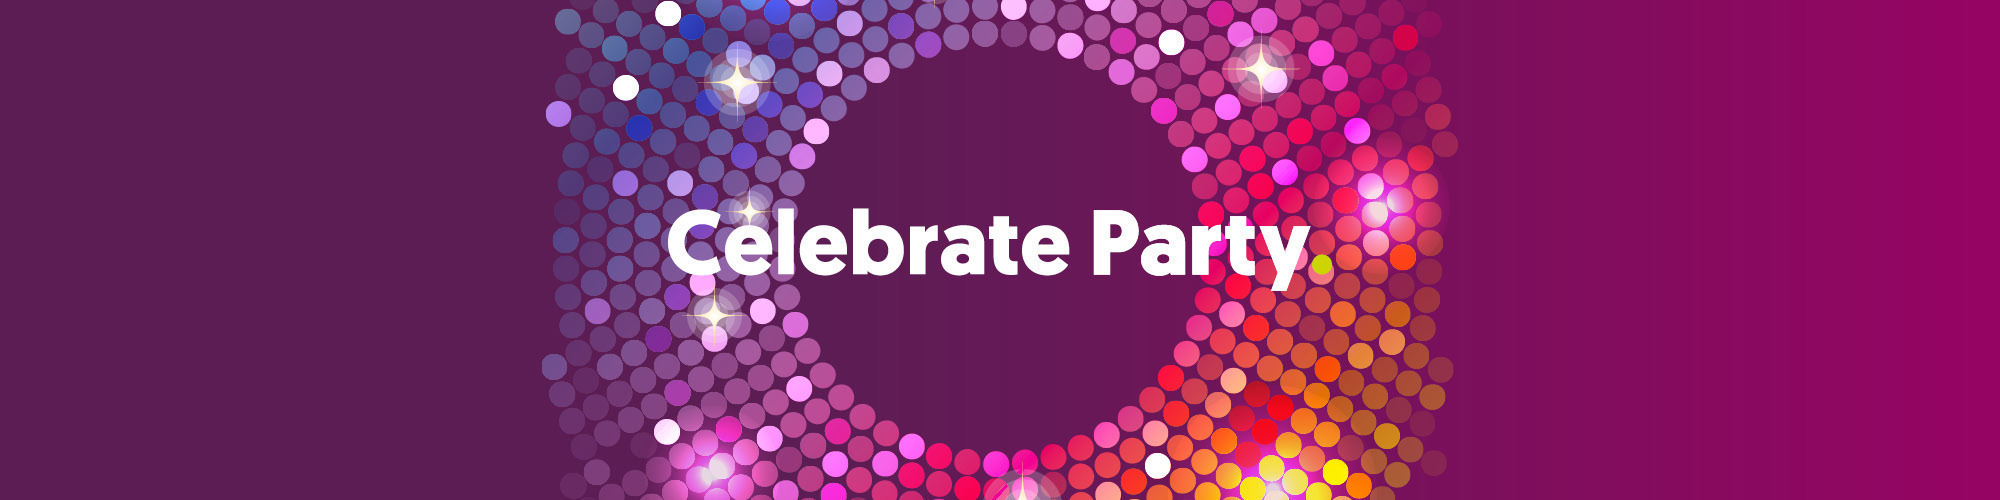 Celebrate party 2000x500